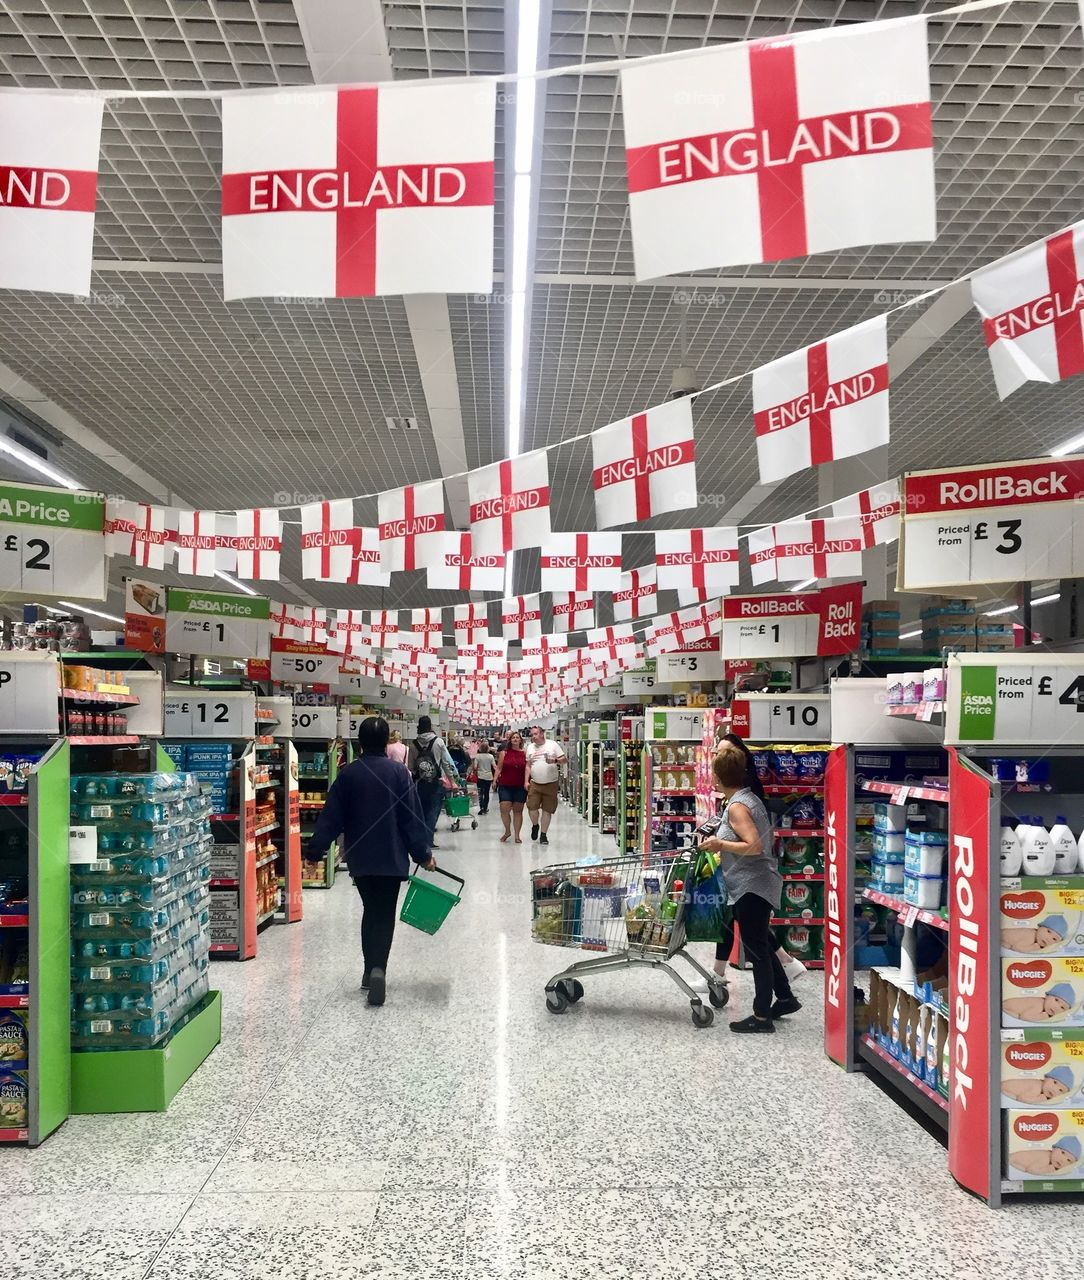 Store En Stock Foap Asda Store Celebrating England S Participation In The